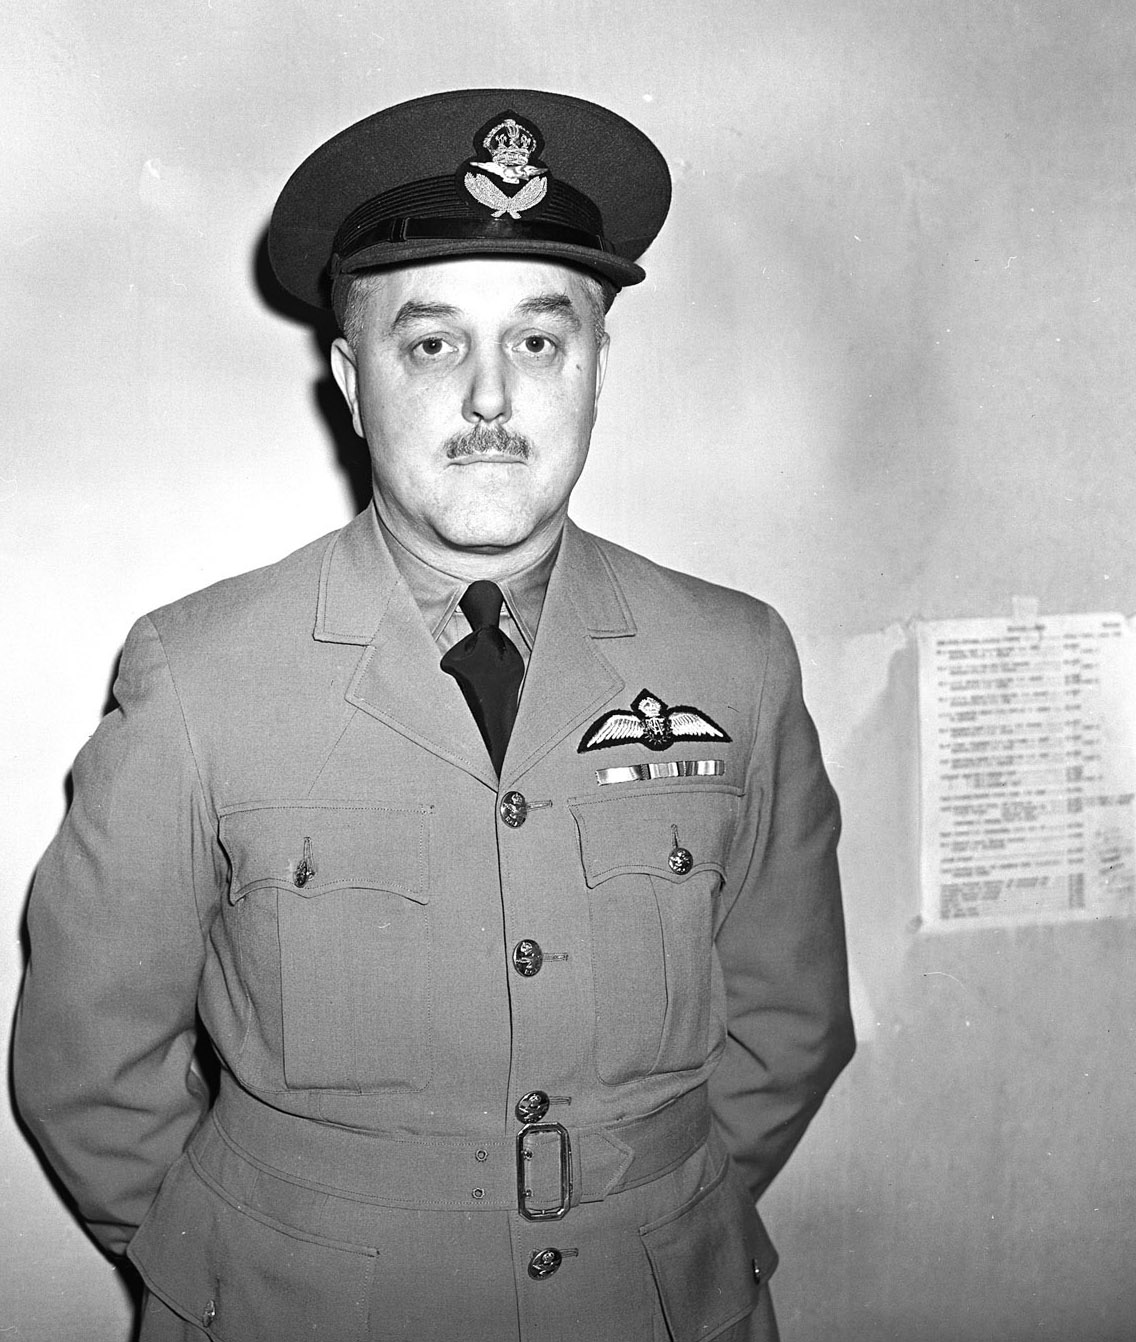 A portrait of Battle of Britain pilot Wing Commander Arthur M. Yuile, taken on June 17, 1942, just after he took command of 118 Squadron, whose role it was to provide air defence of Halifax, Nova Scotia. DND Archives, PL-9183